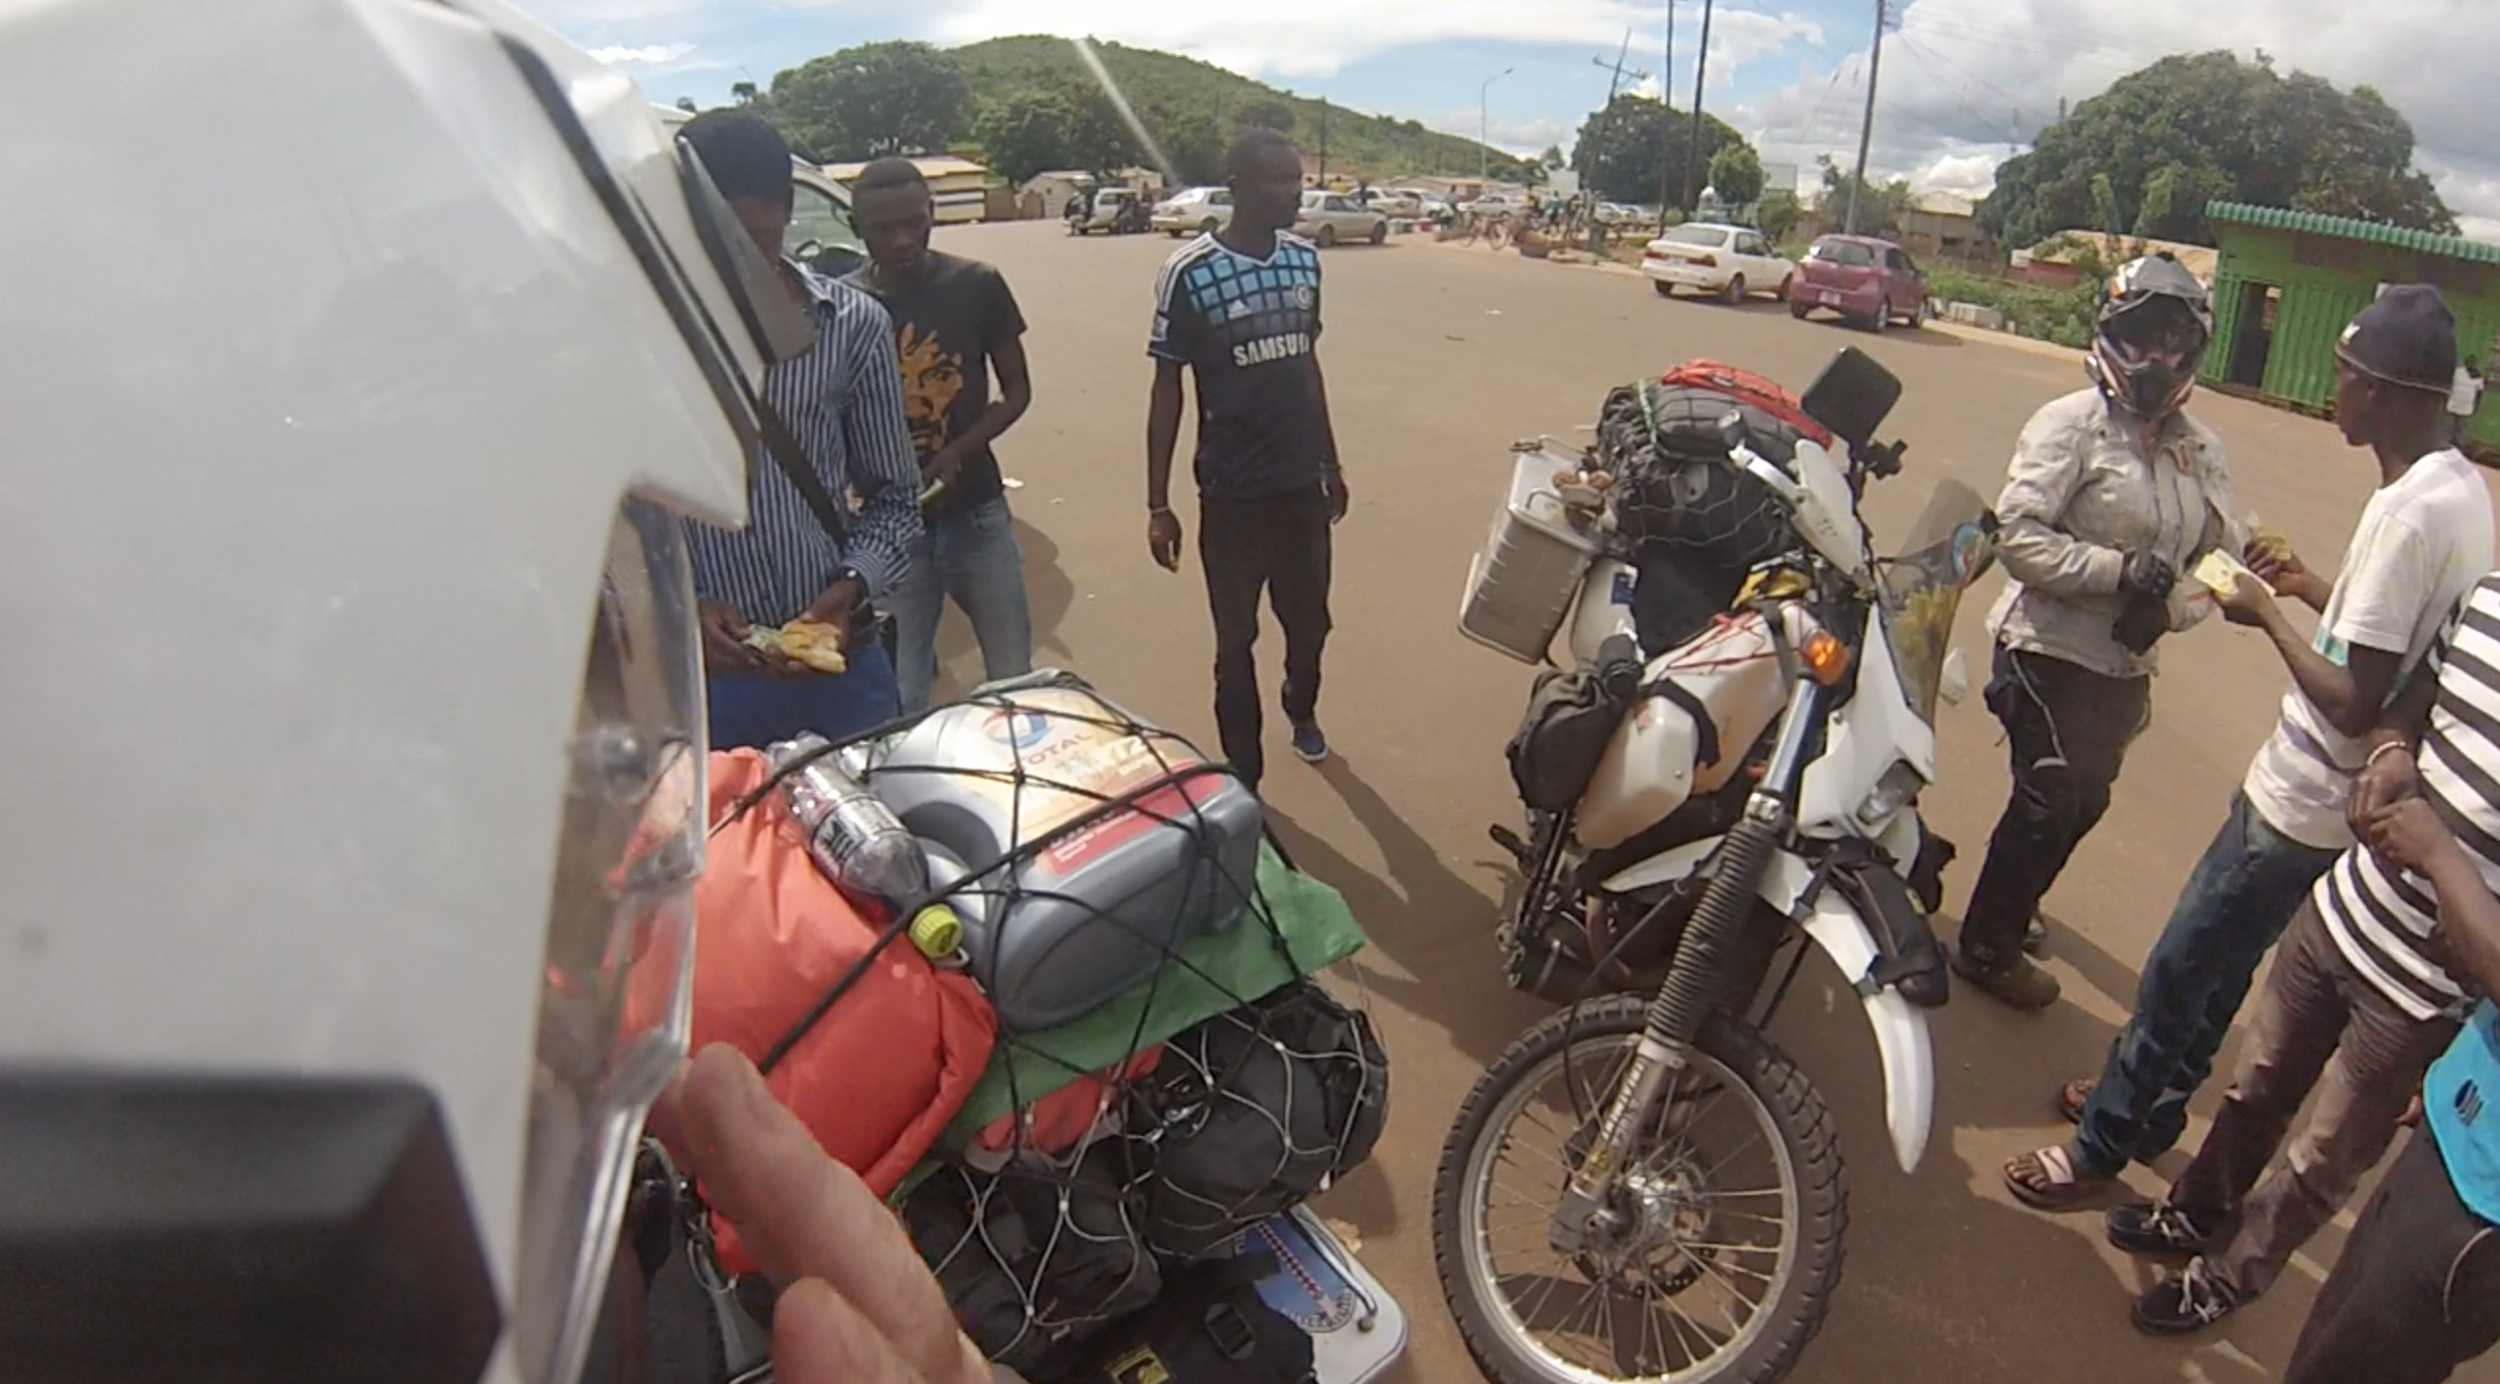 Surrounded, at the Malawi border!